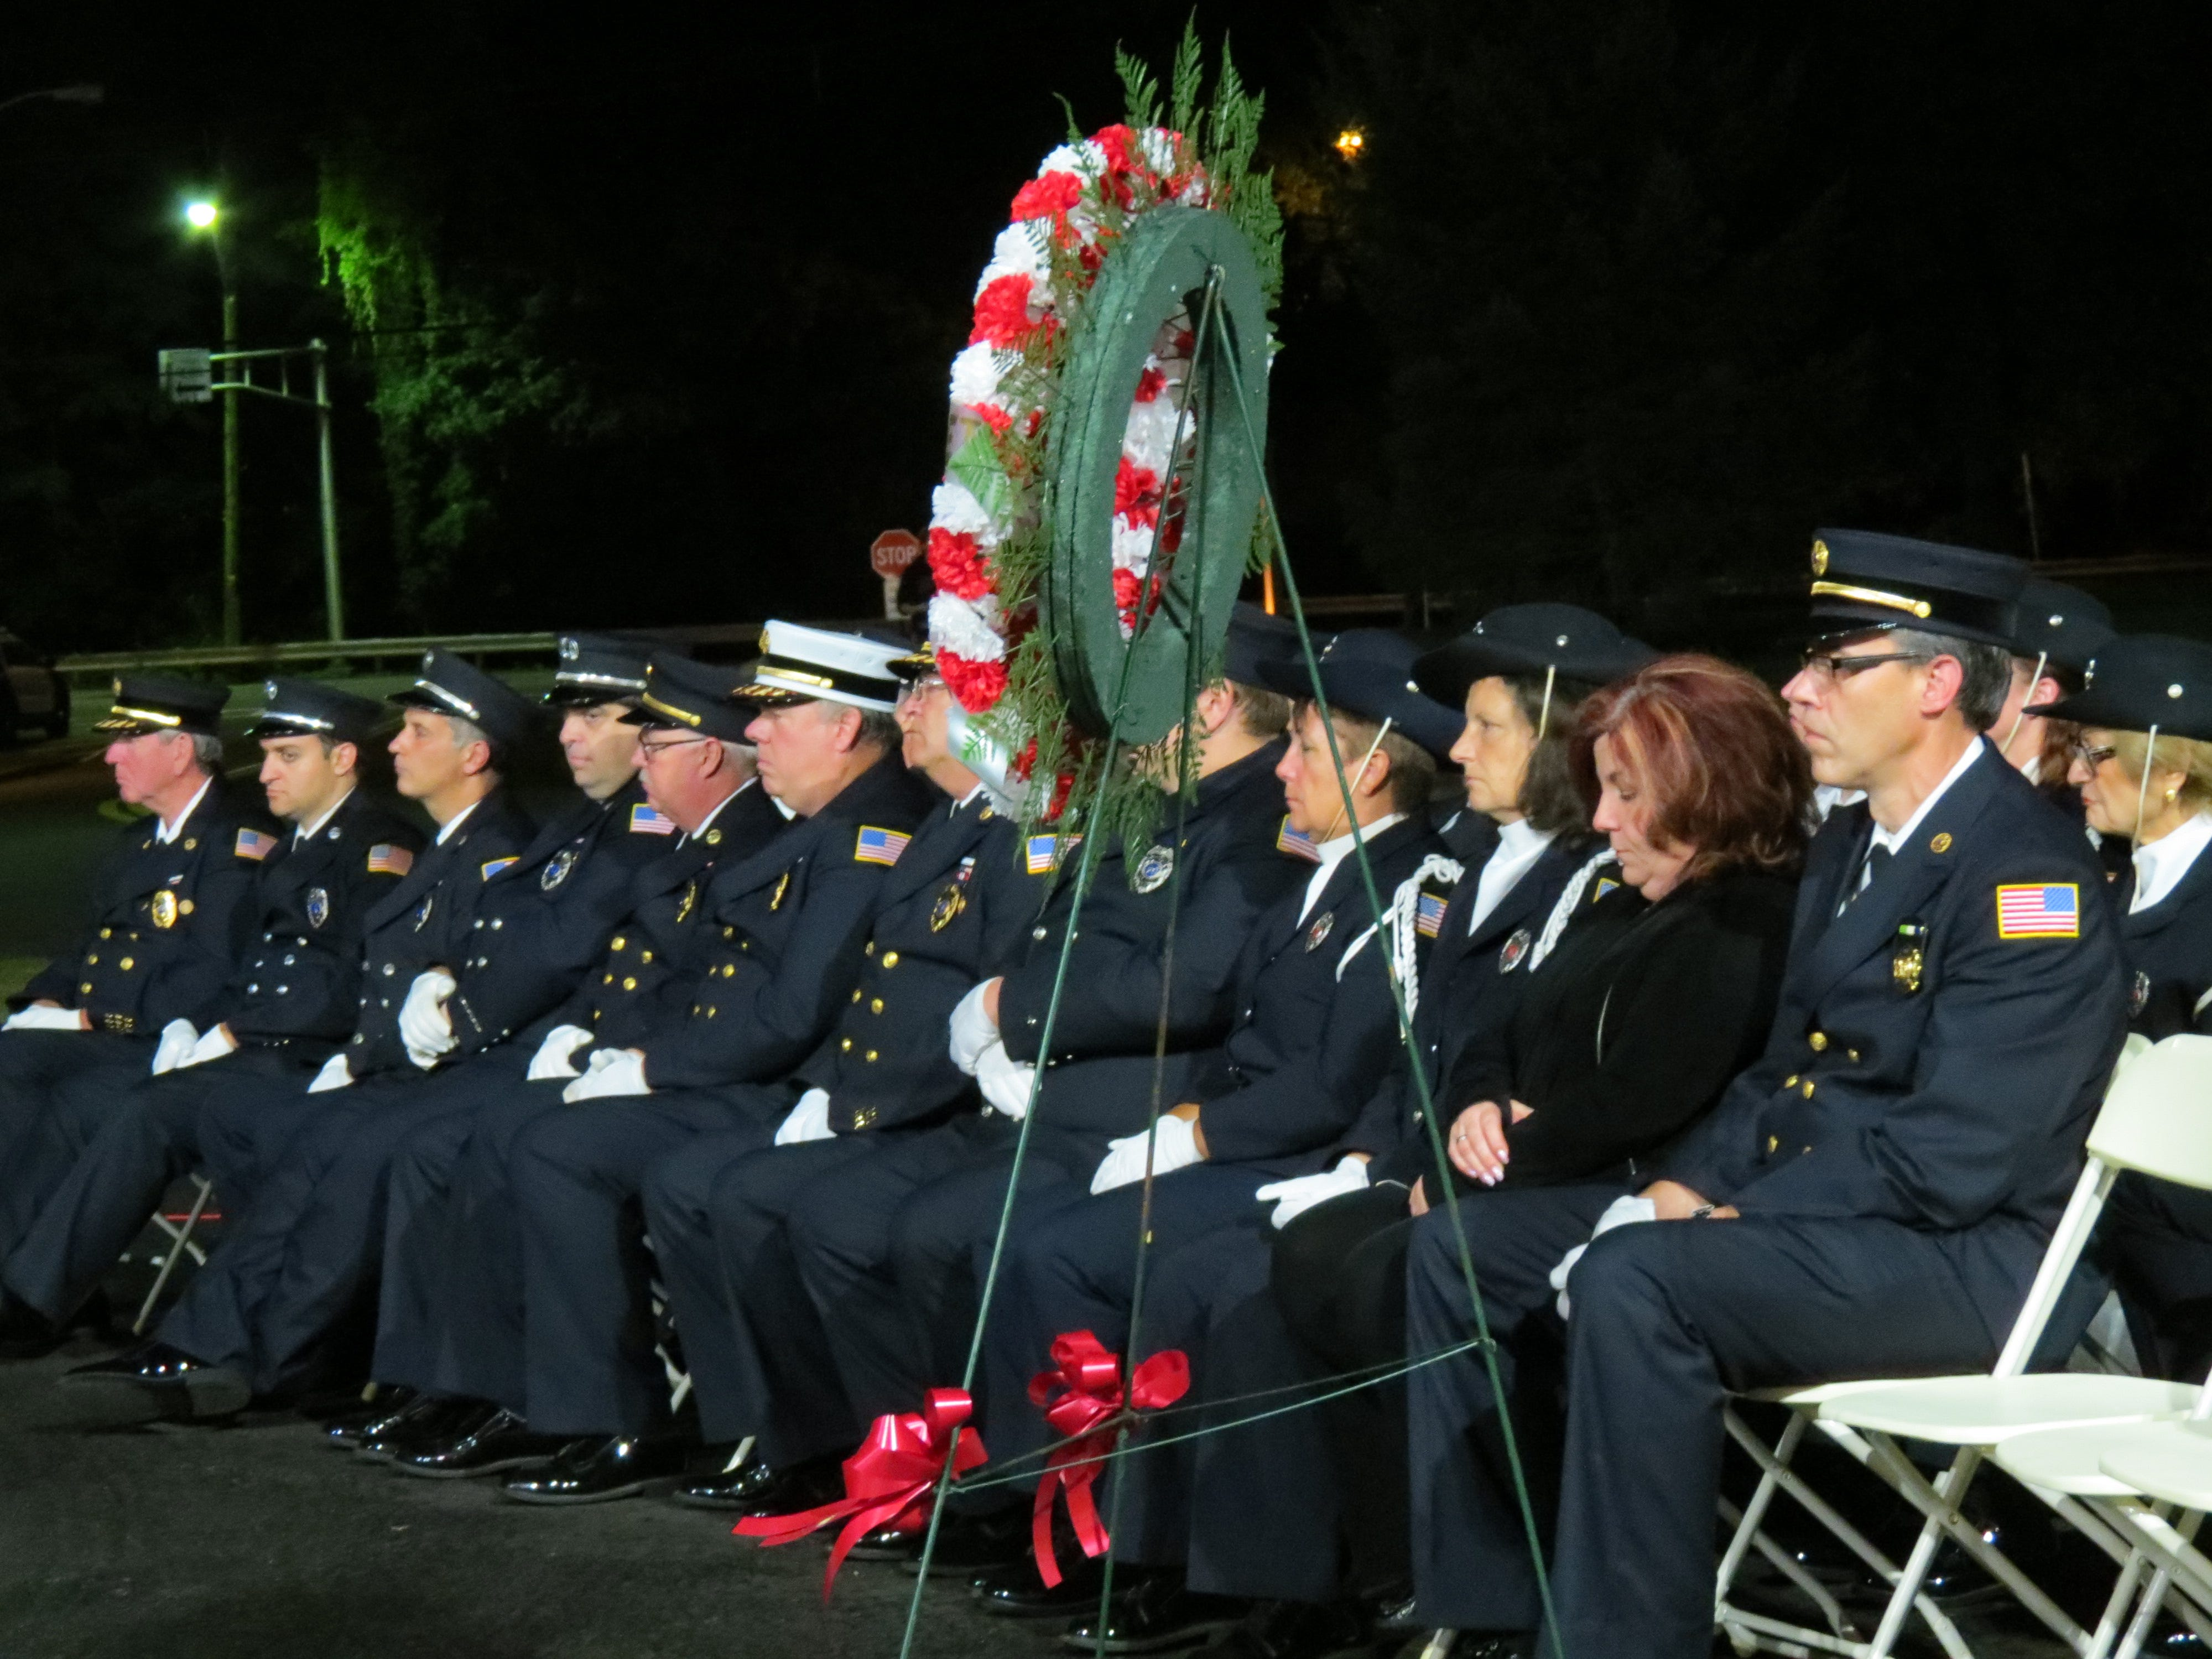 Montvale firefighters participate in a 9/11 ceremony at the firehouse on the 17th anniversary of 9/11.